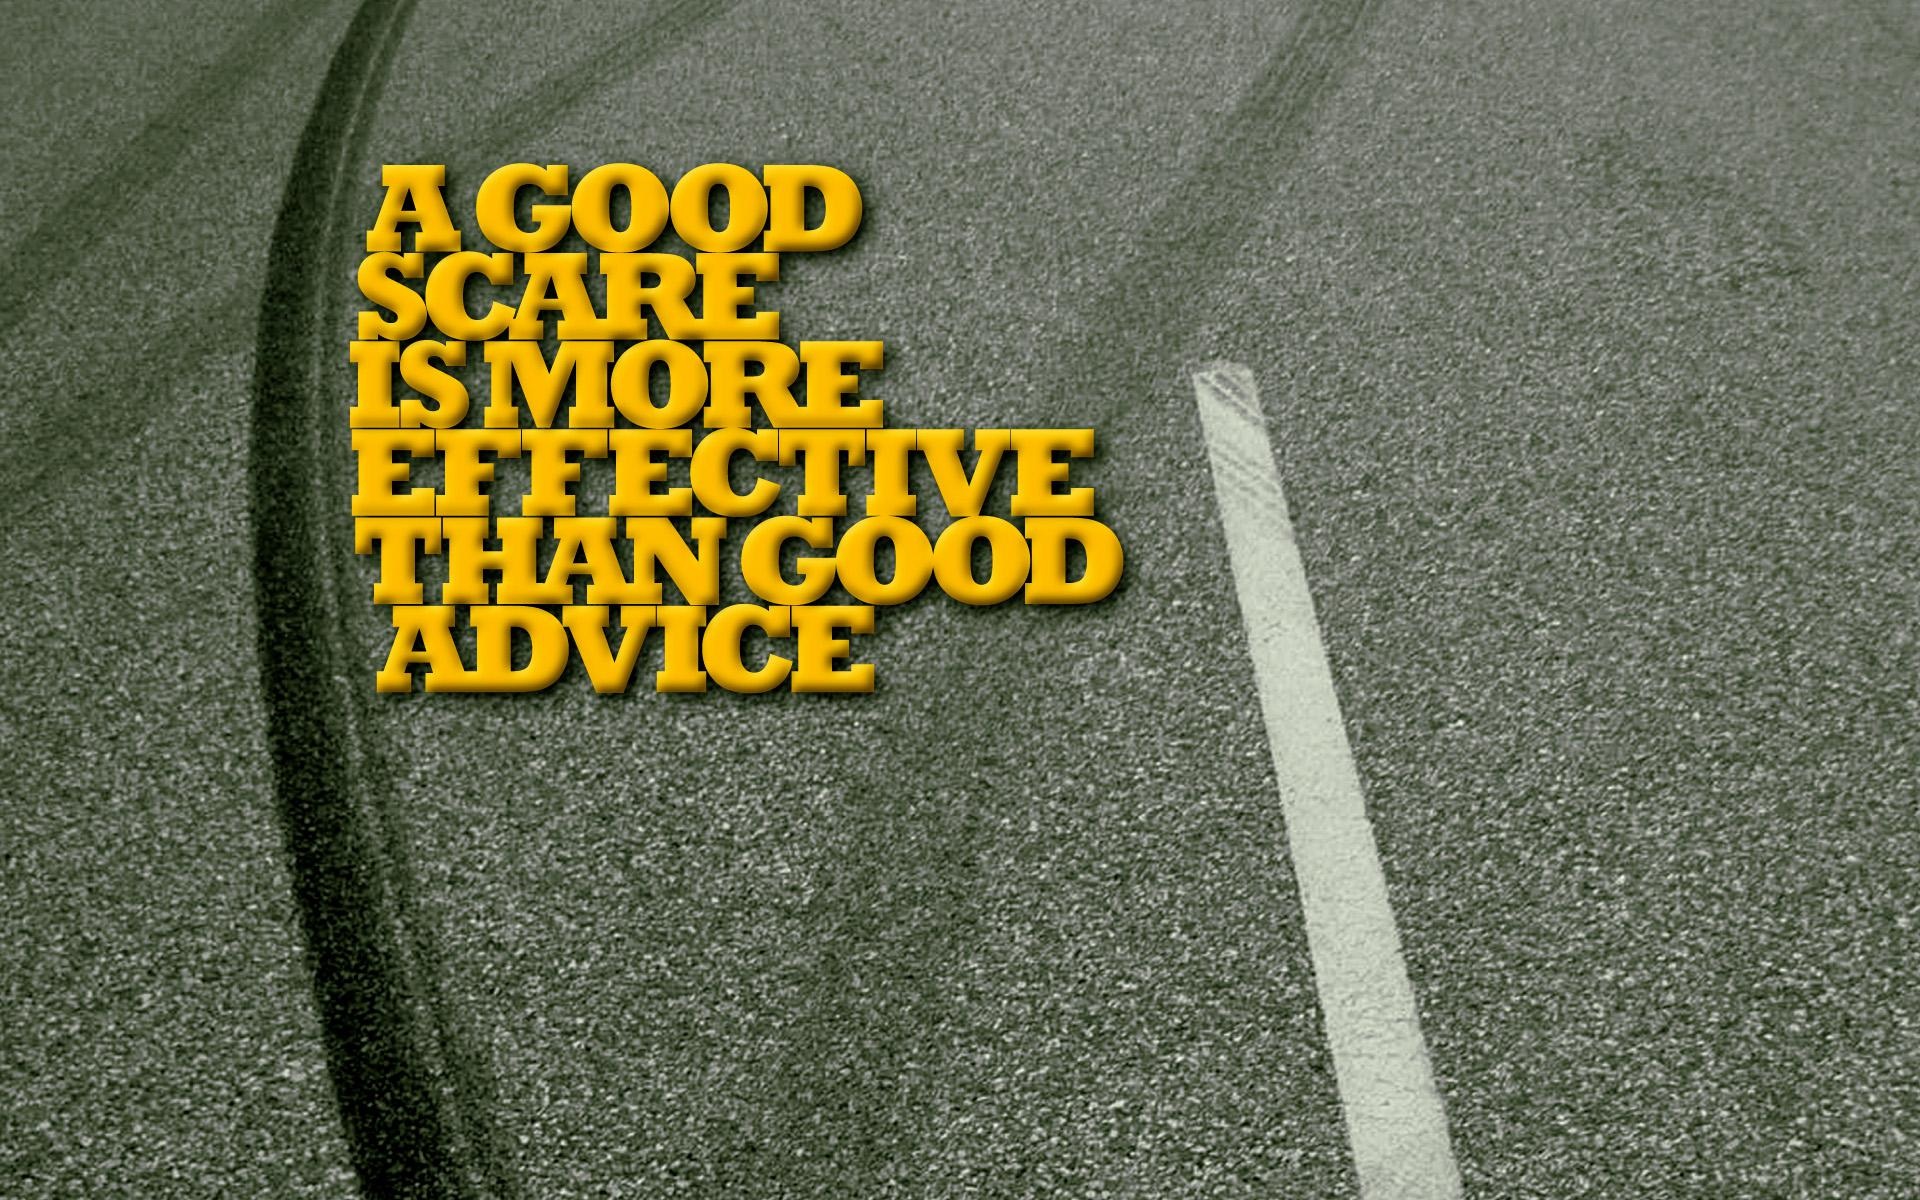 A good scare is more effective than good advice. — Anon [1920 x 1200]